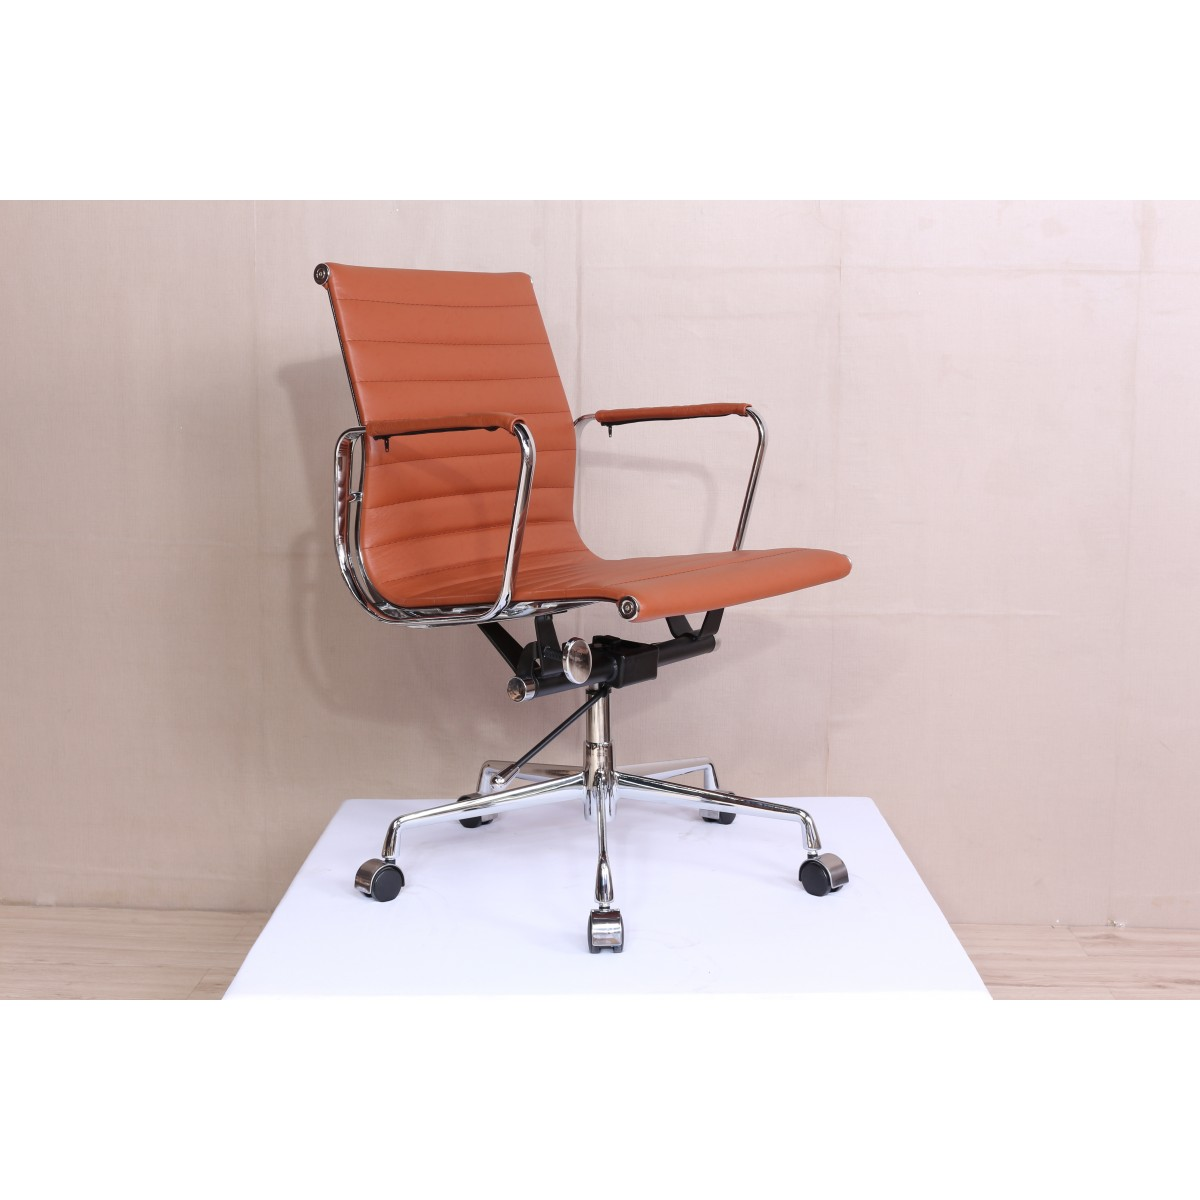 Eames ribbed chair tan office Orange Ea117 Eames Style Office Chair Low Back Ribbed Cognac Brown Leather Replica Bomer Ea117 Eames Style Office Chair Low Back Ribbed Cognac Brown Leather